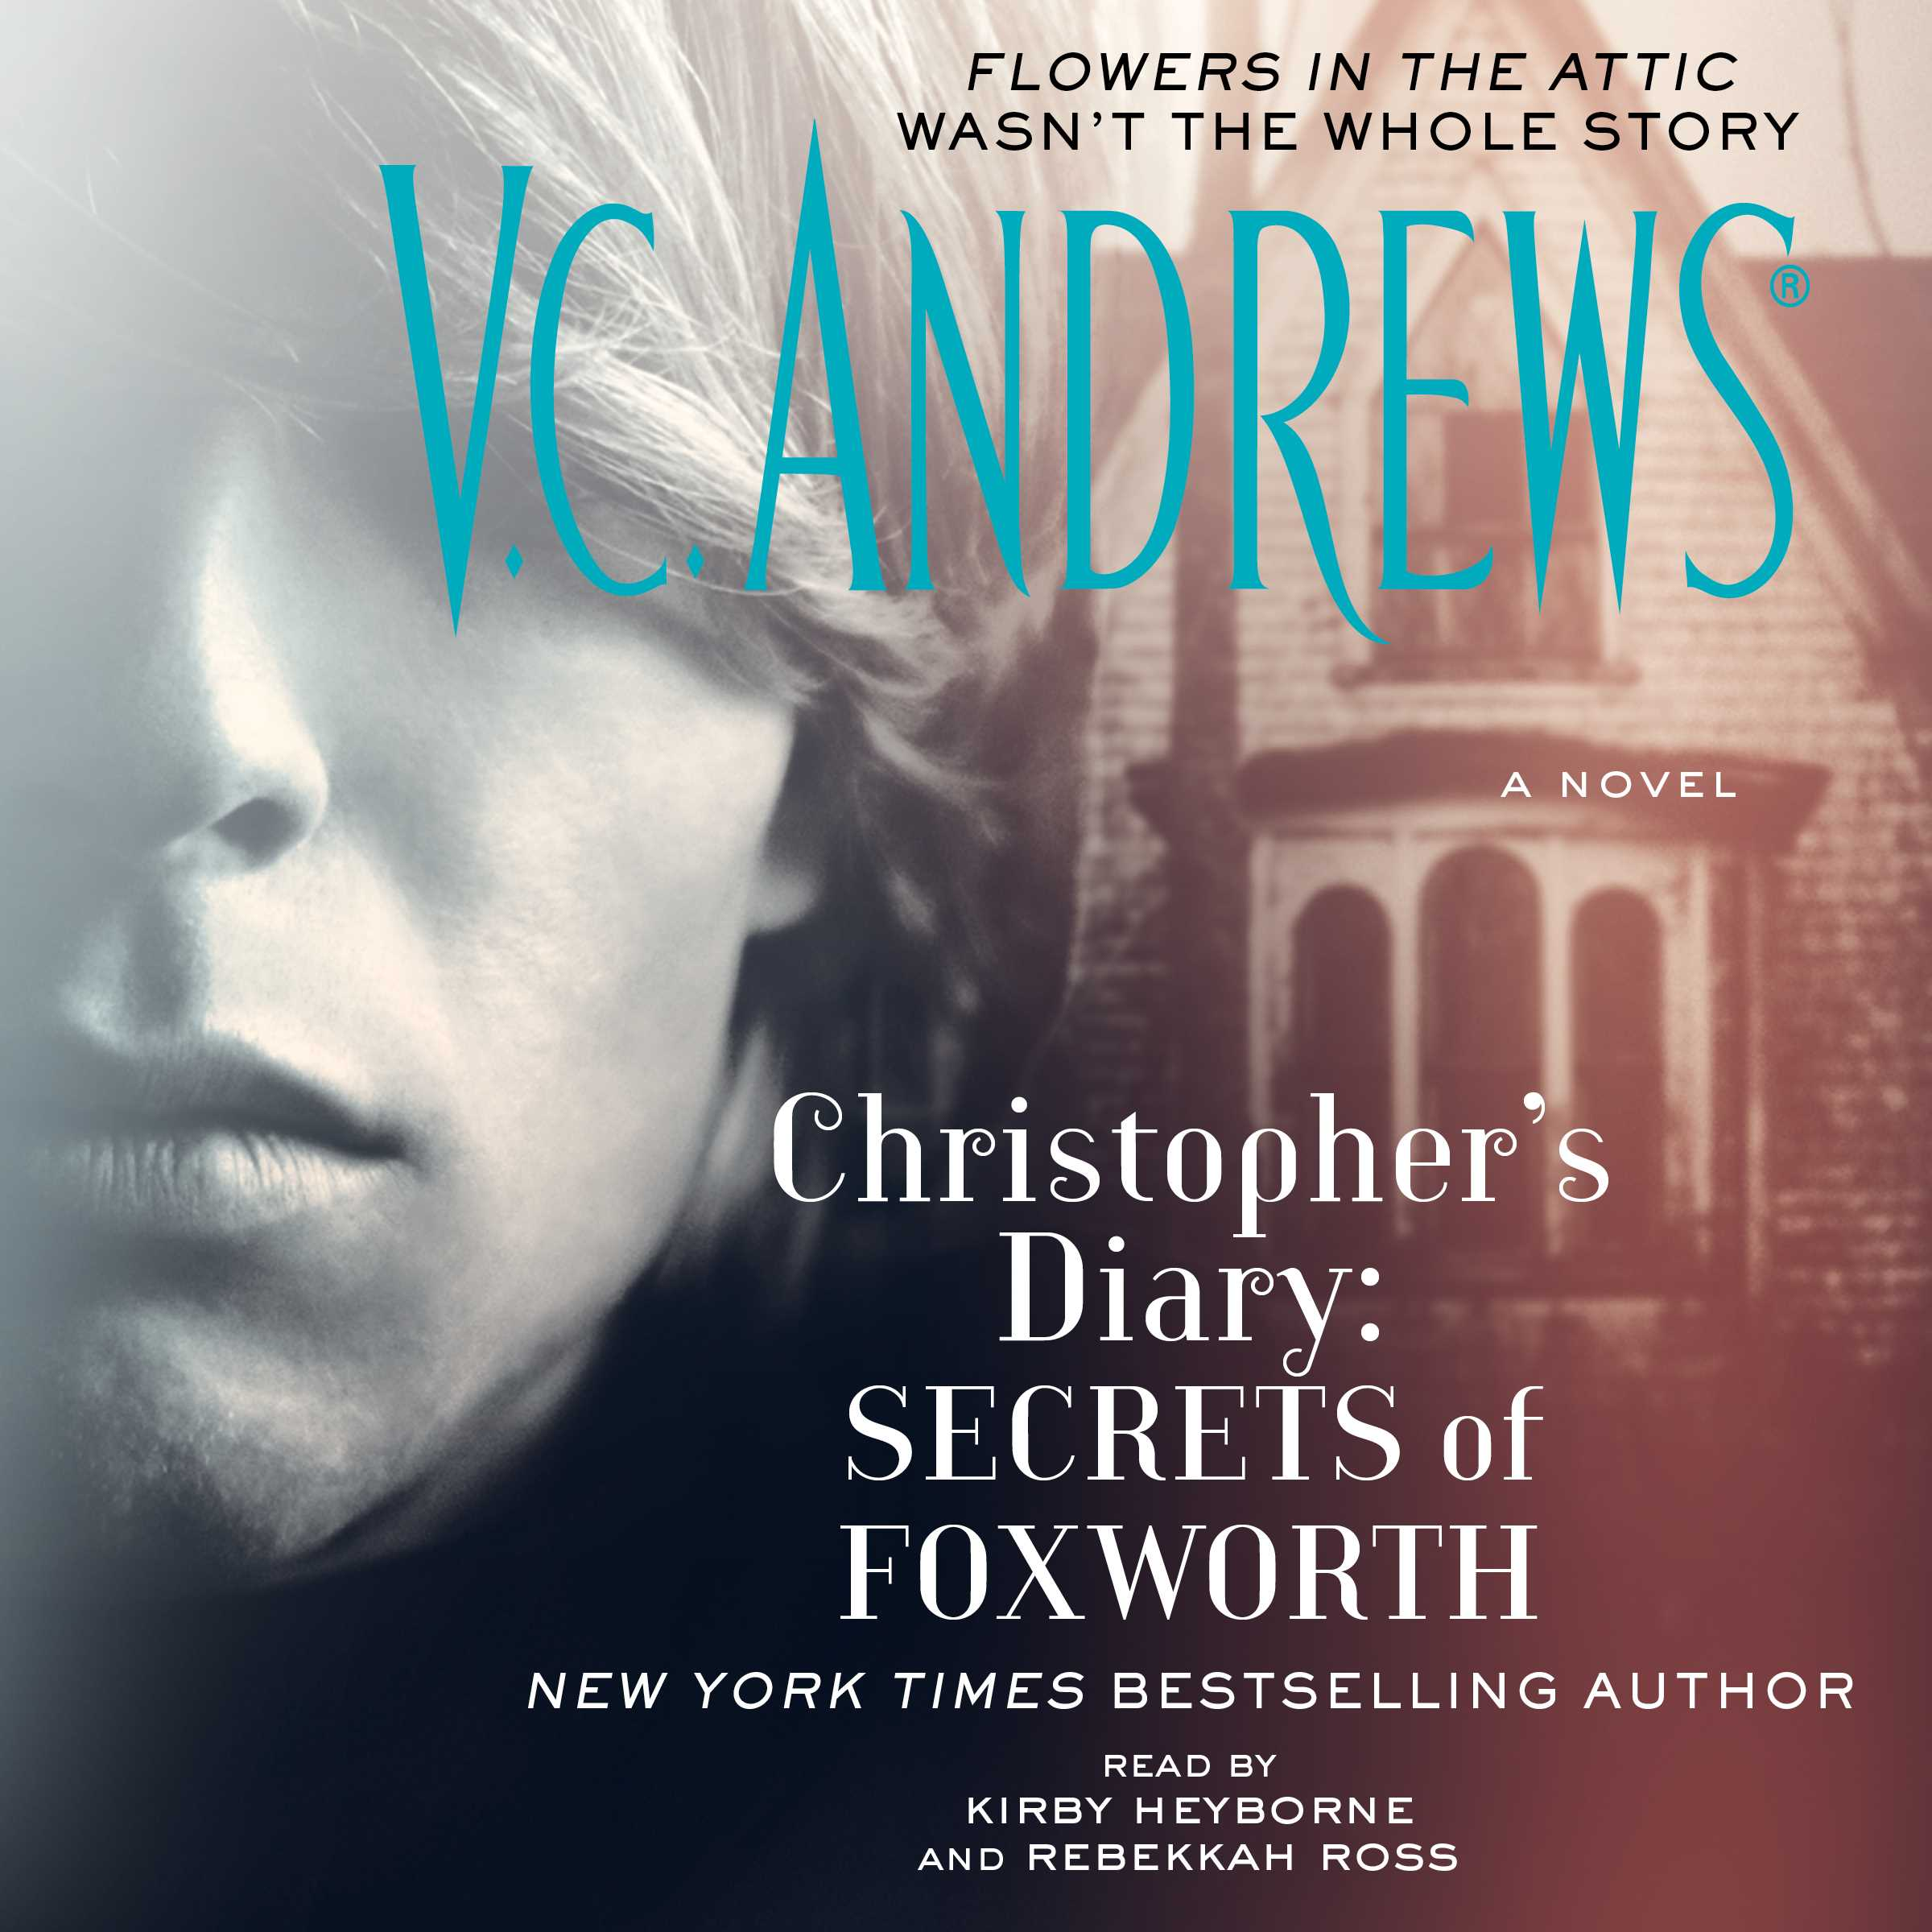 Christophers diary secrets of foxworth 9781442377660 hr